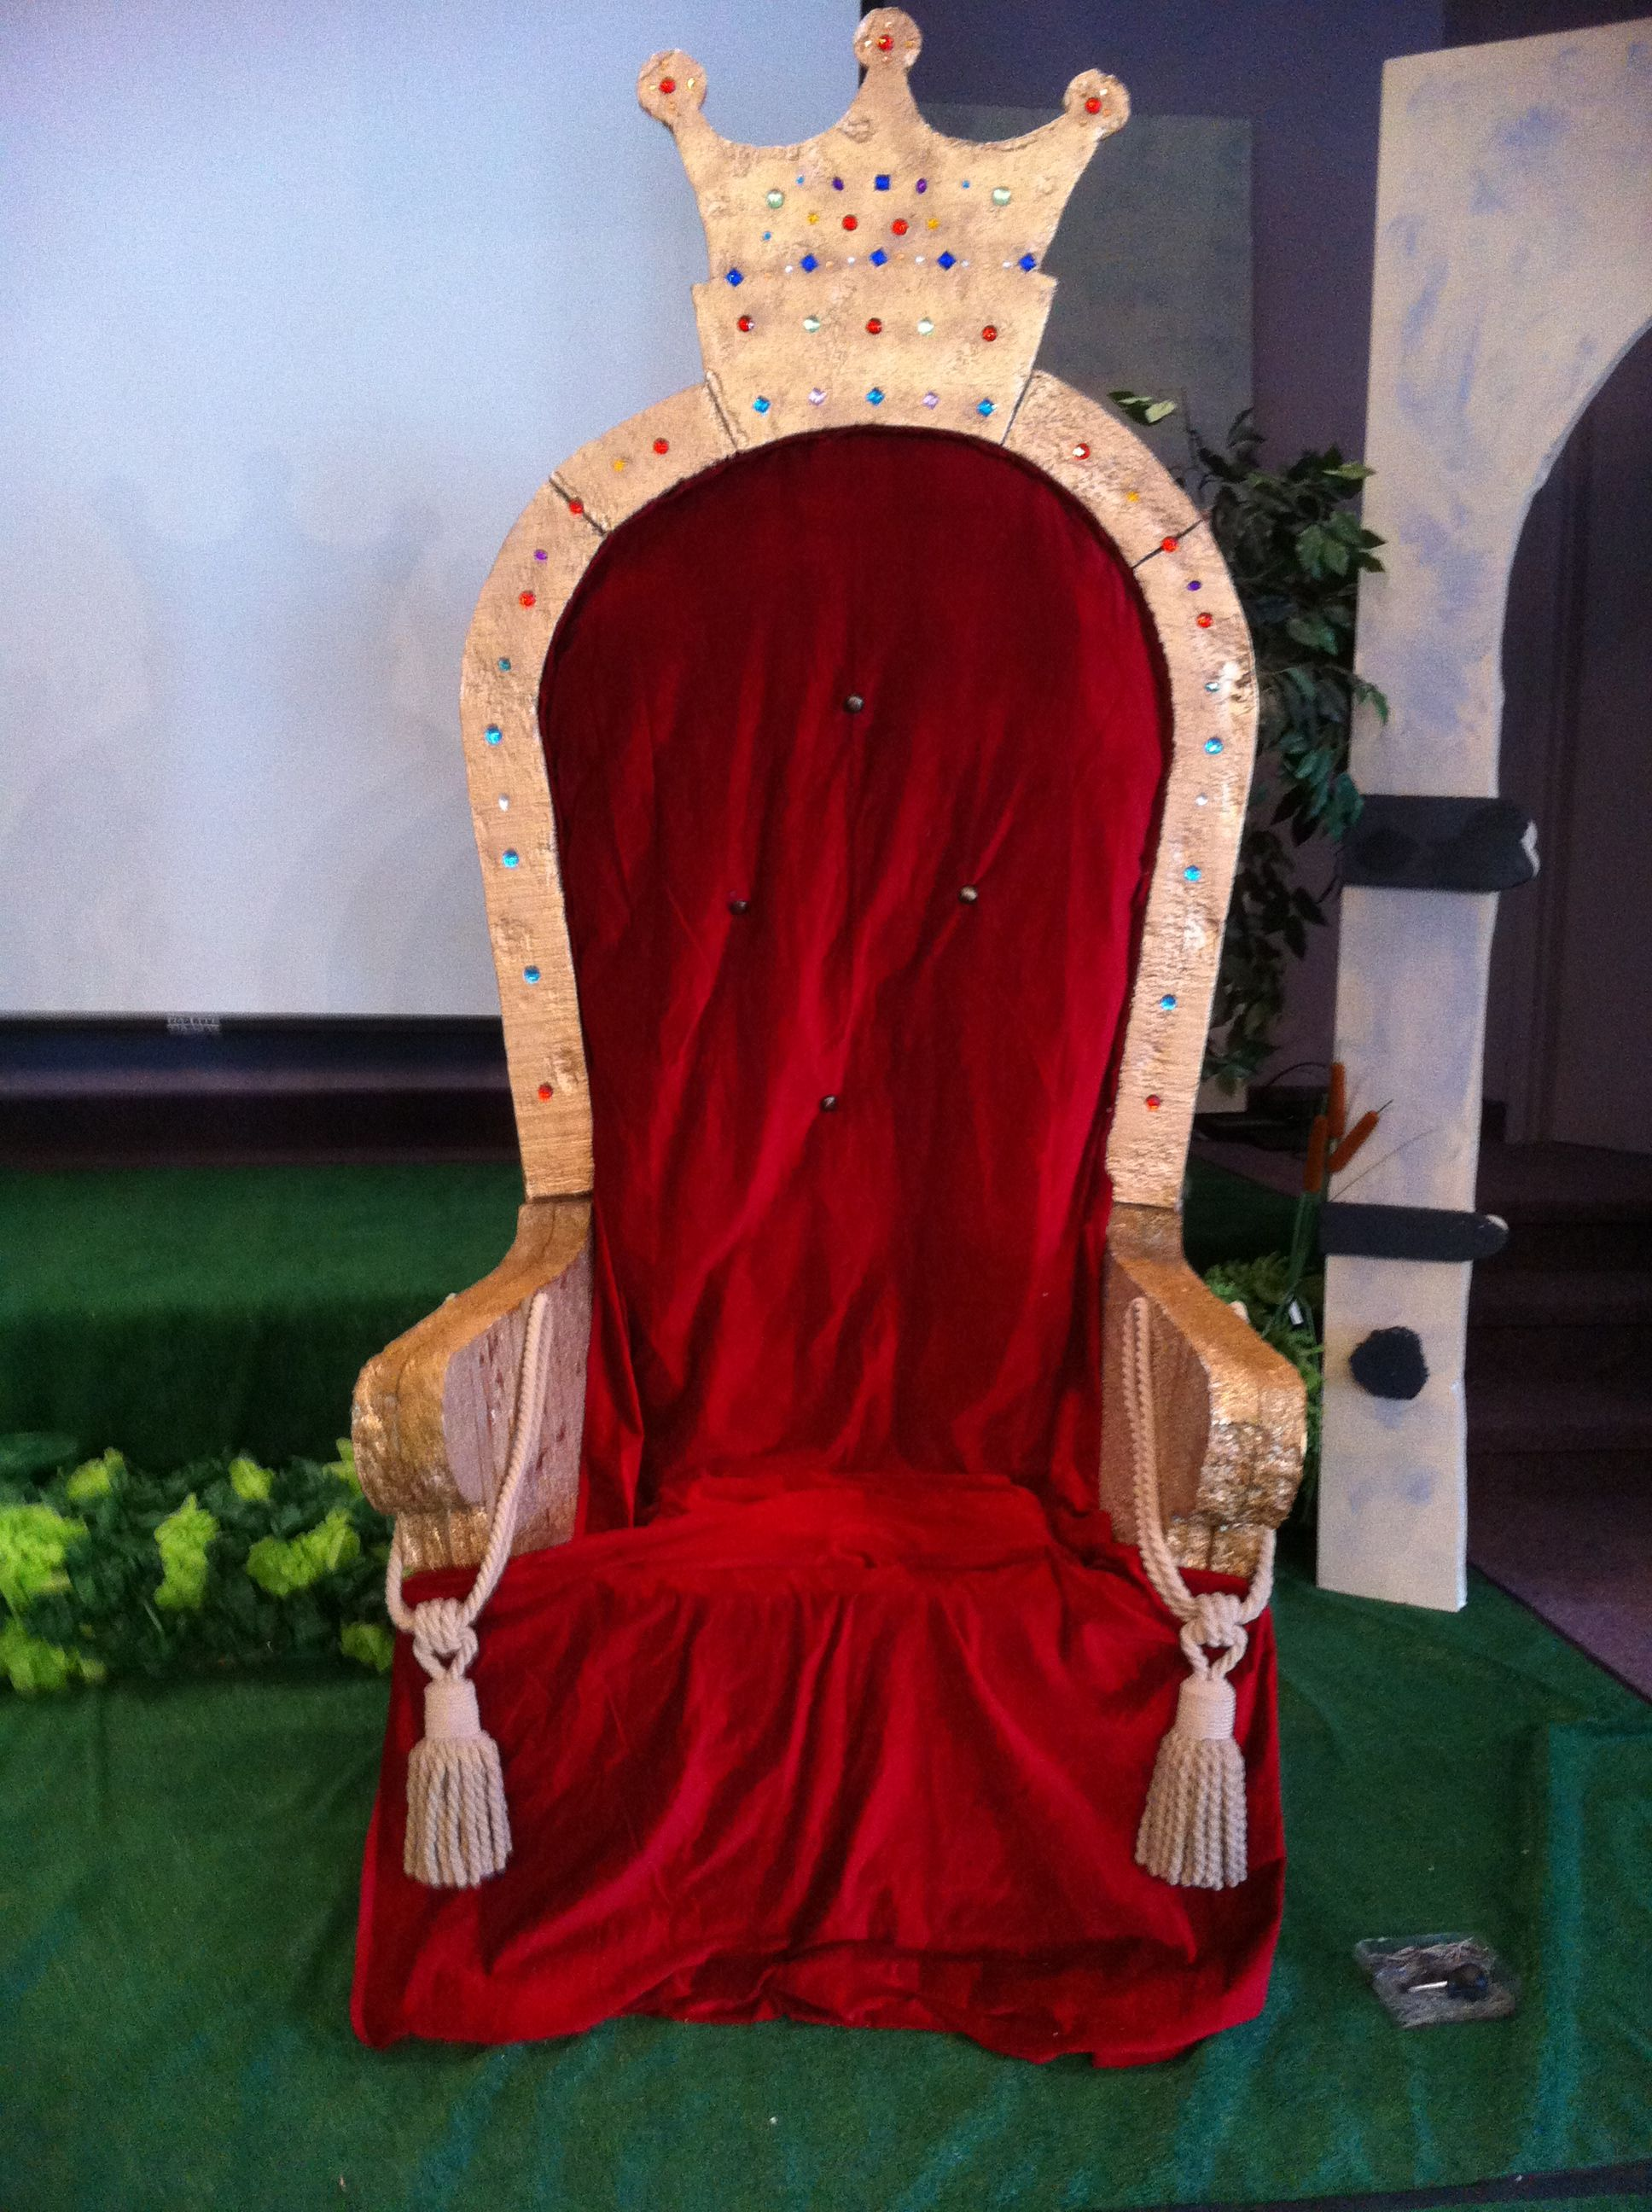 throne chair cover images free download need to make a spirit for our pep rallies this is